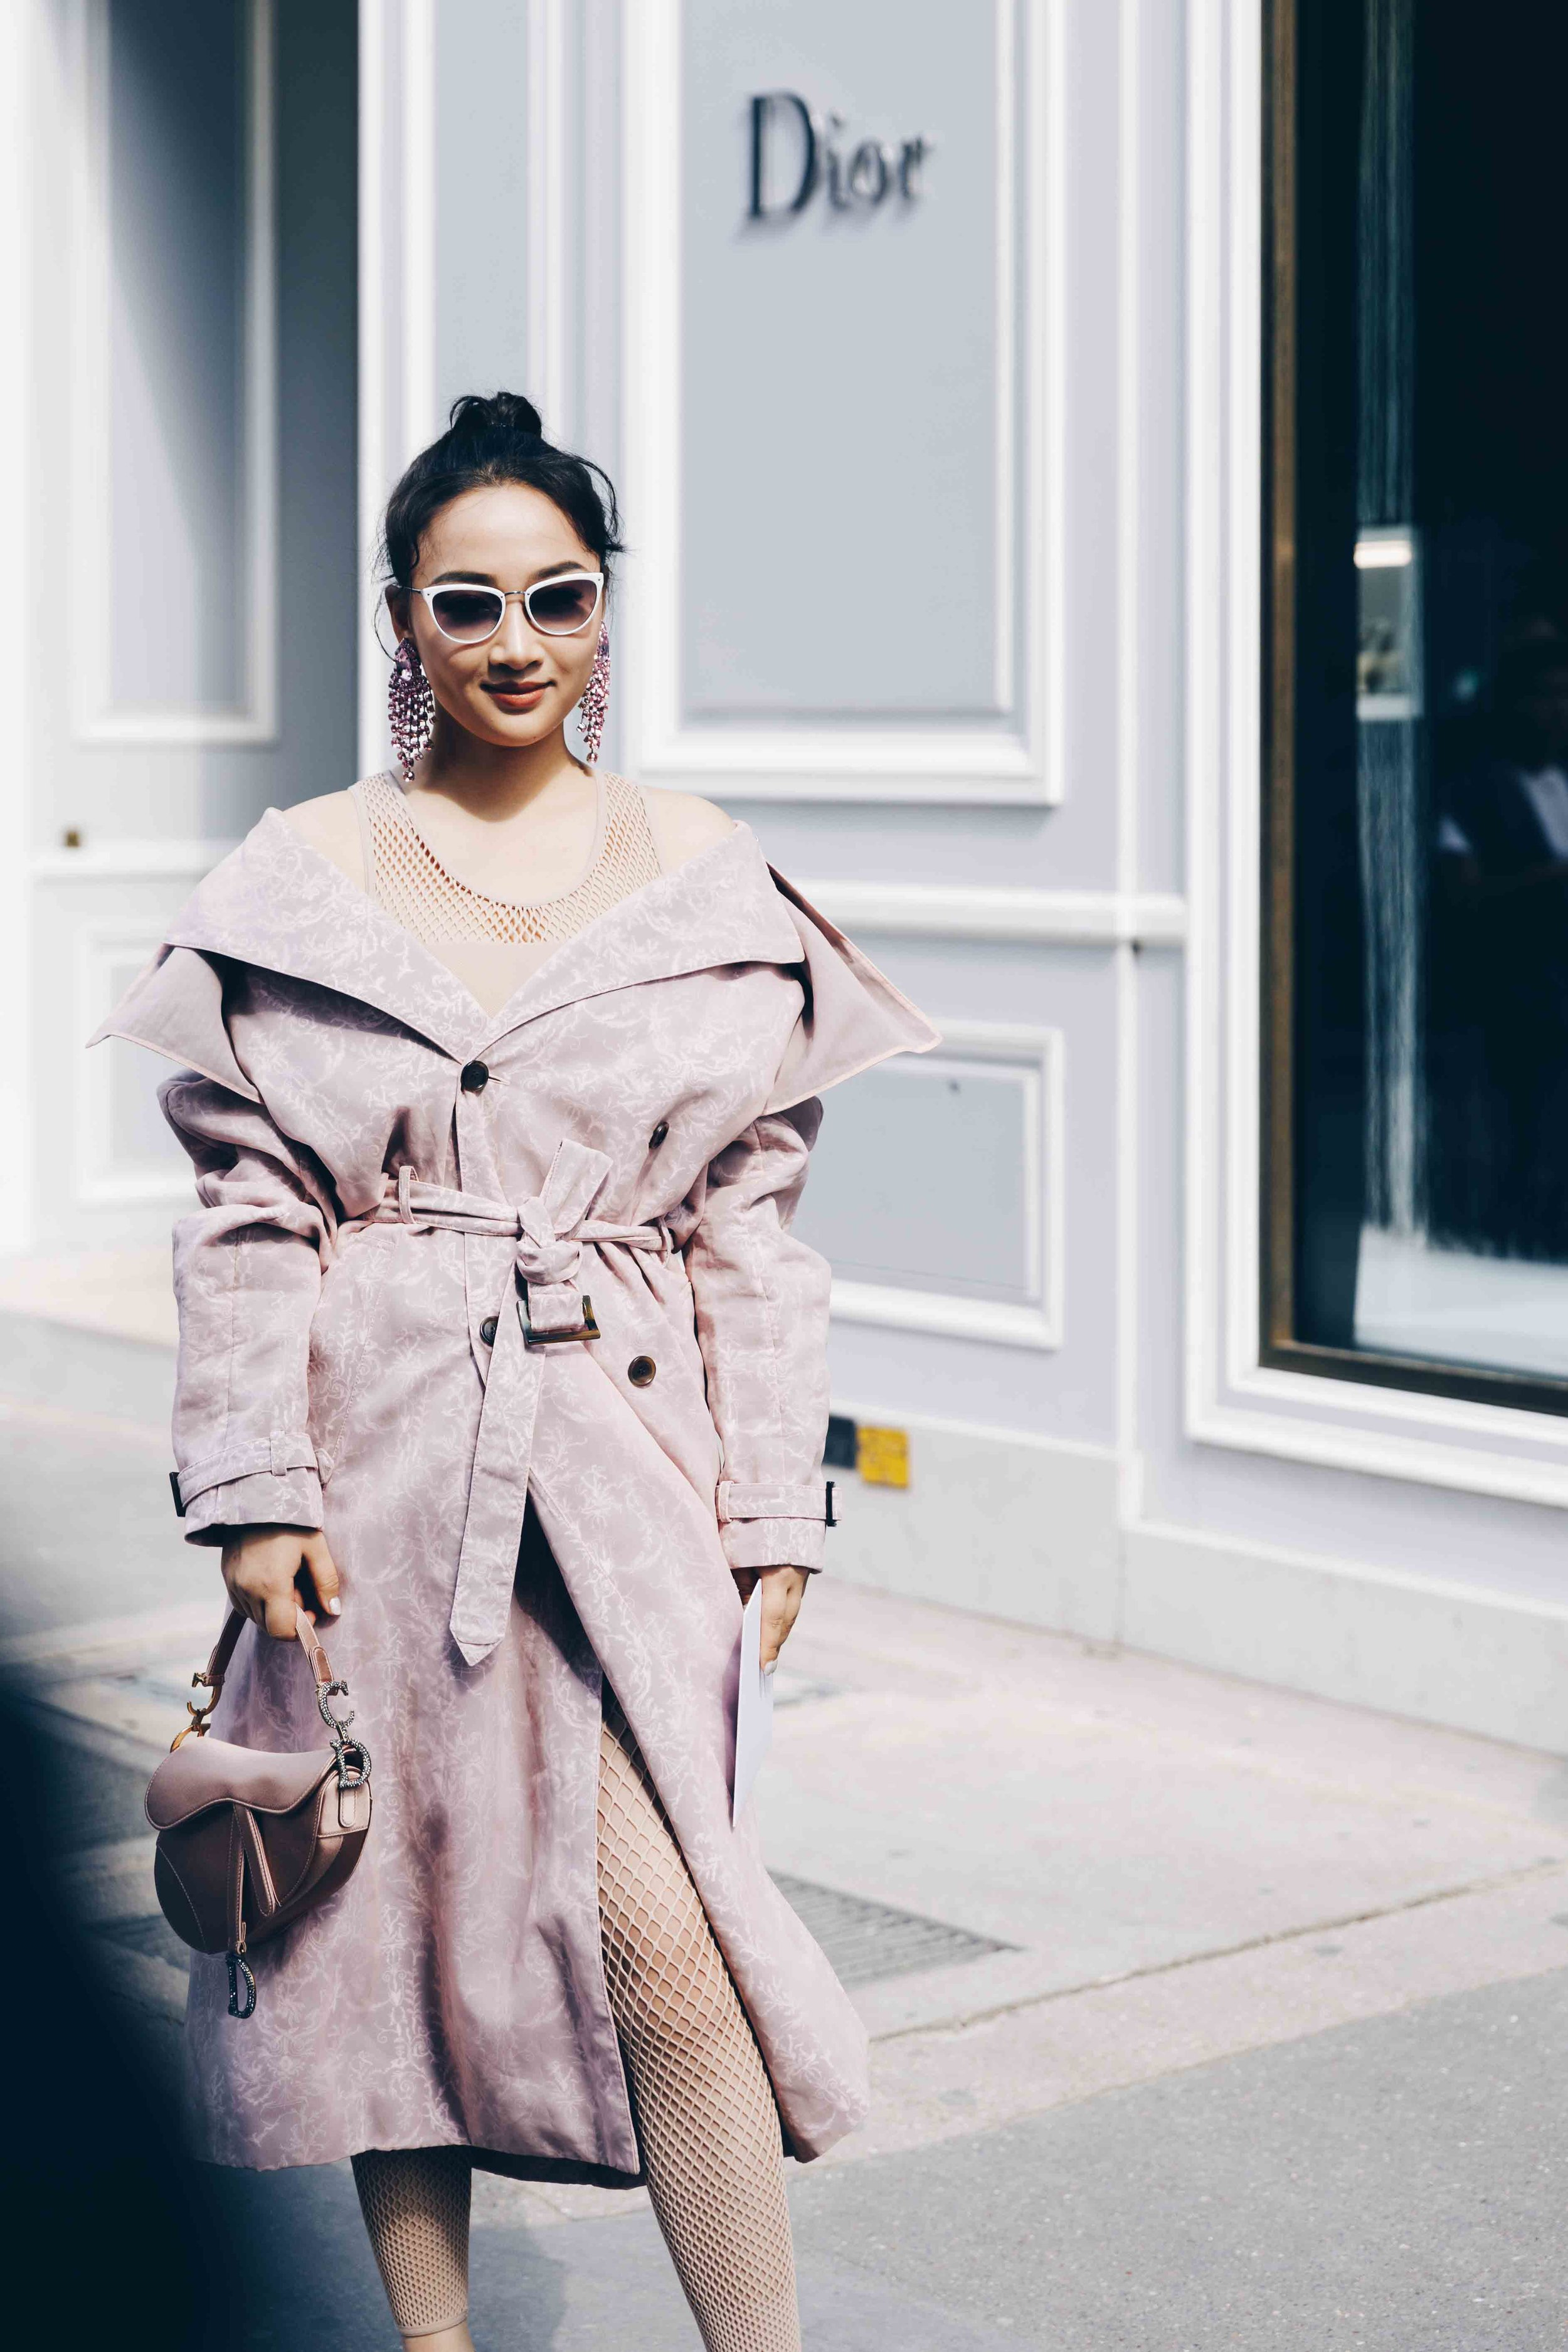 Street style at Dior during Paris Fashion Week Haute-Couture Fall/Winter 2019/2020